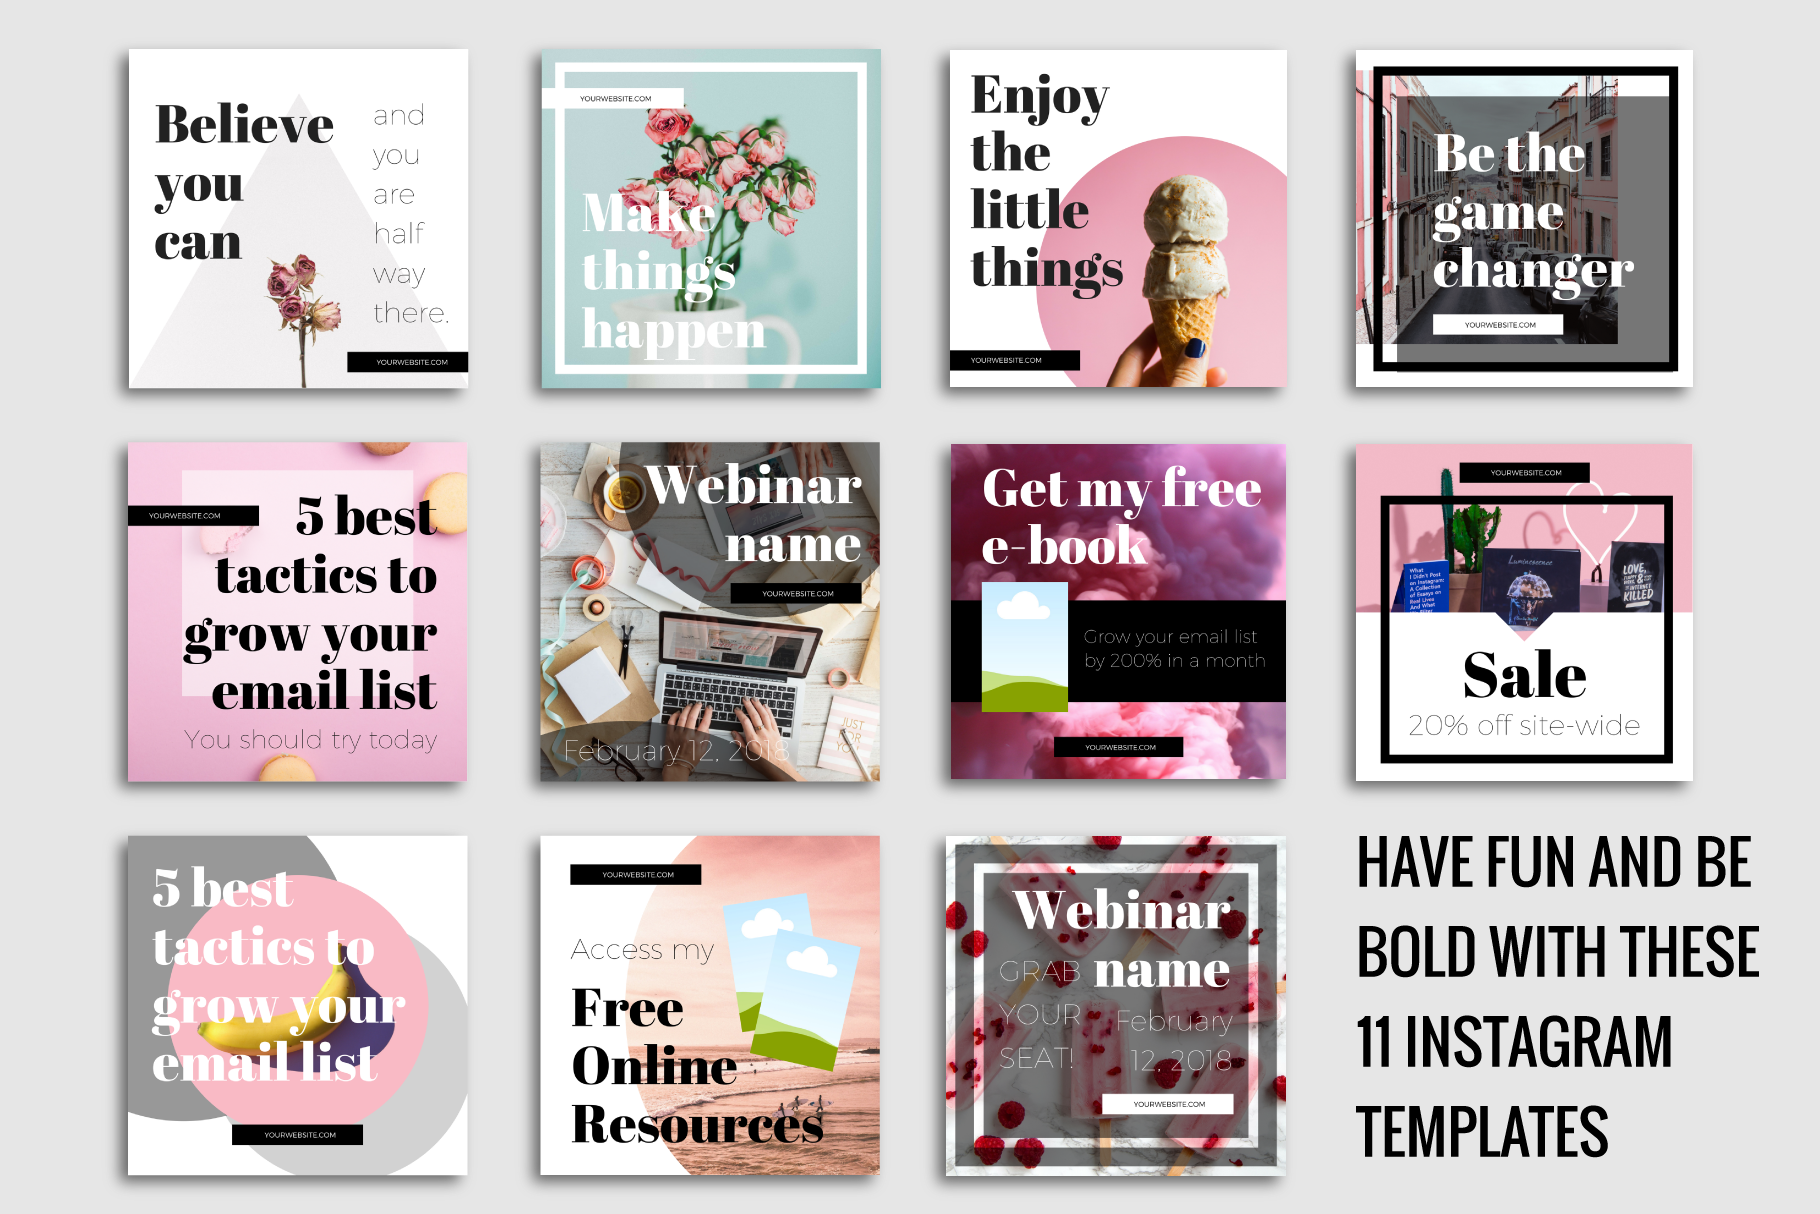 Instagram Templates Made In Canva example image 3